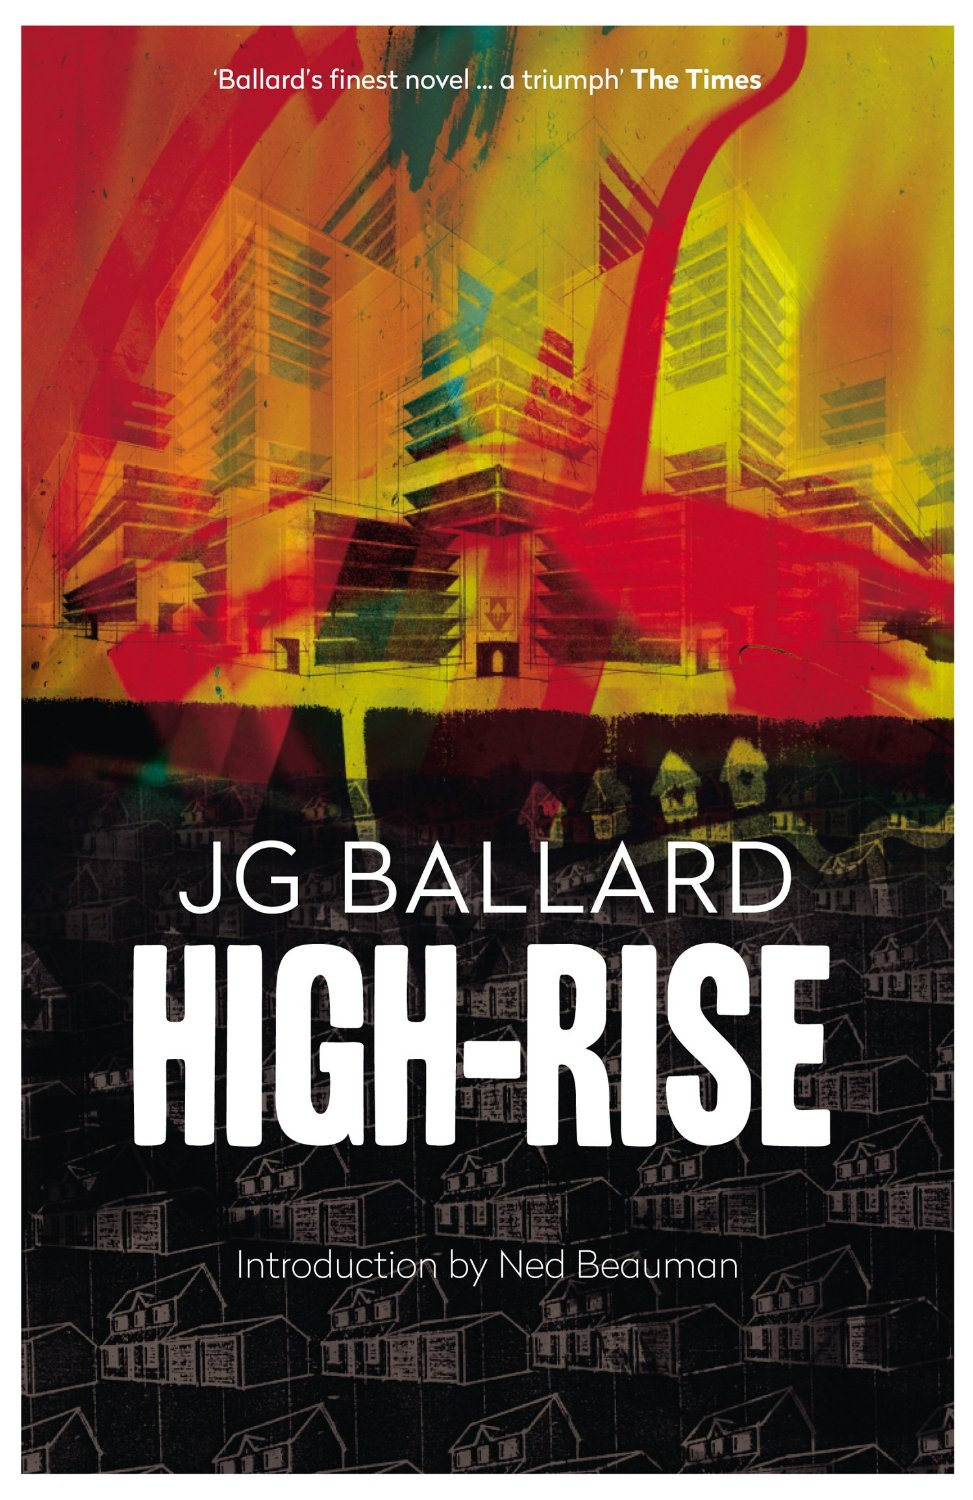 Book Cover Series Review ~ Book review high rise by jg ballard the view from